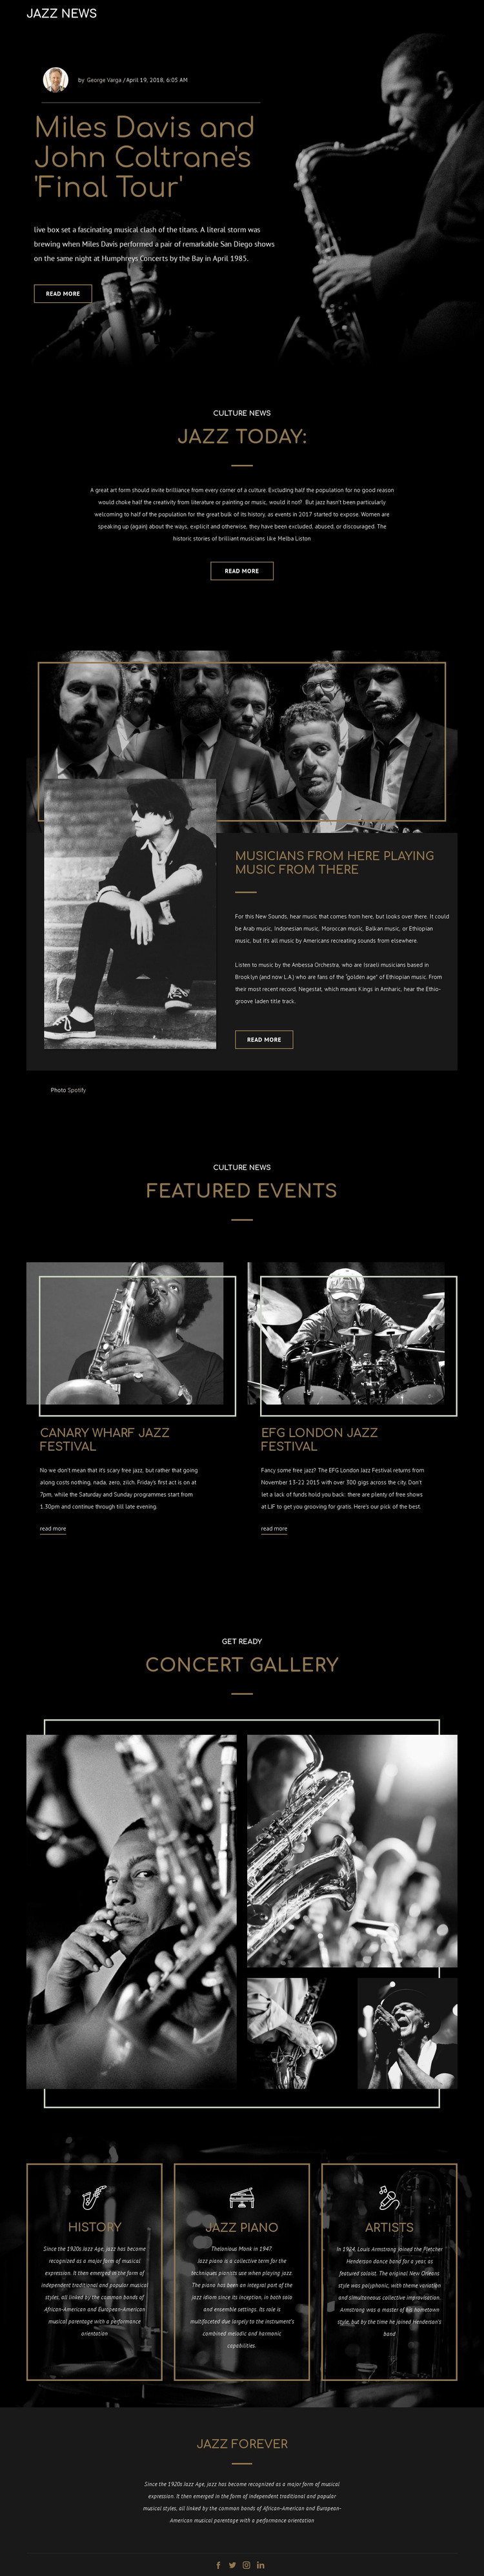 Legengs of jazz music Web Design